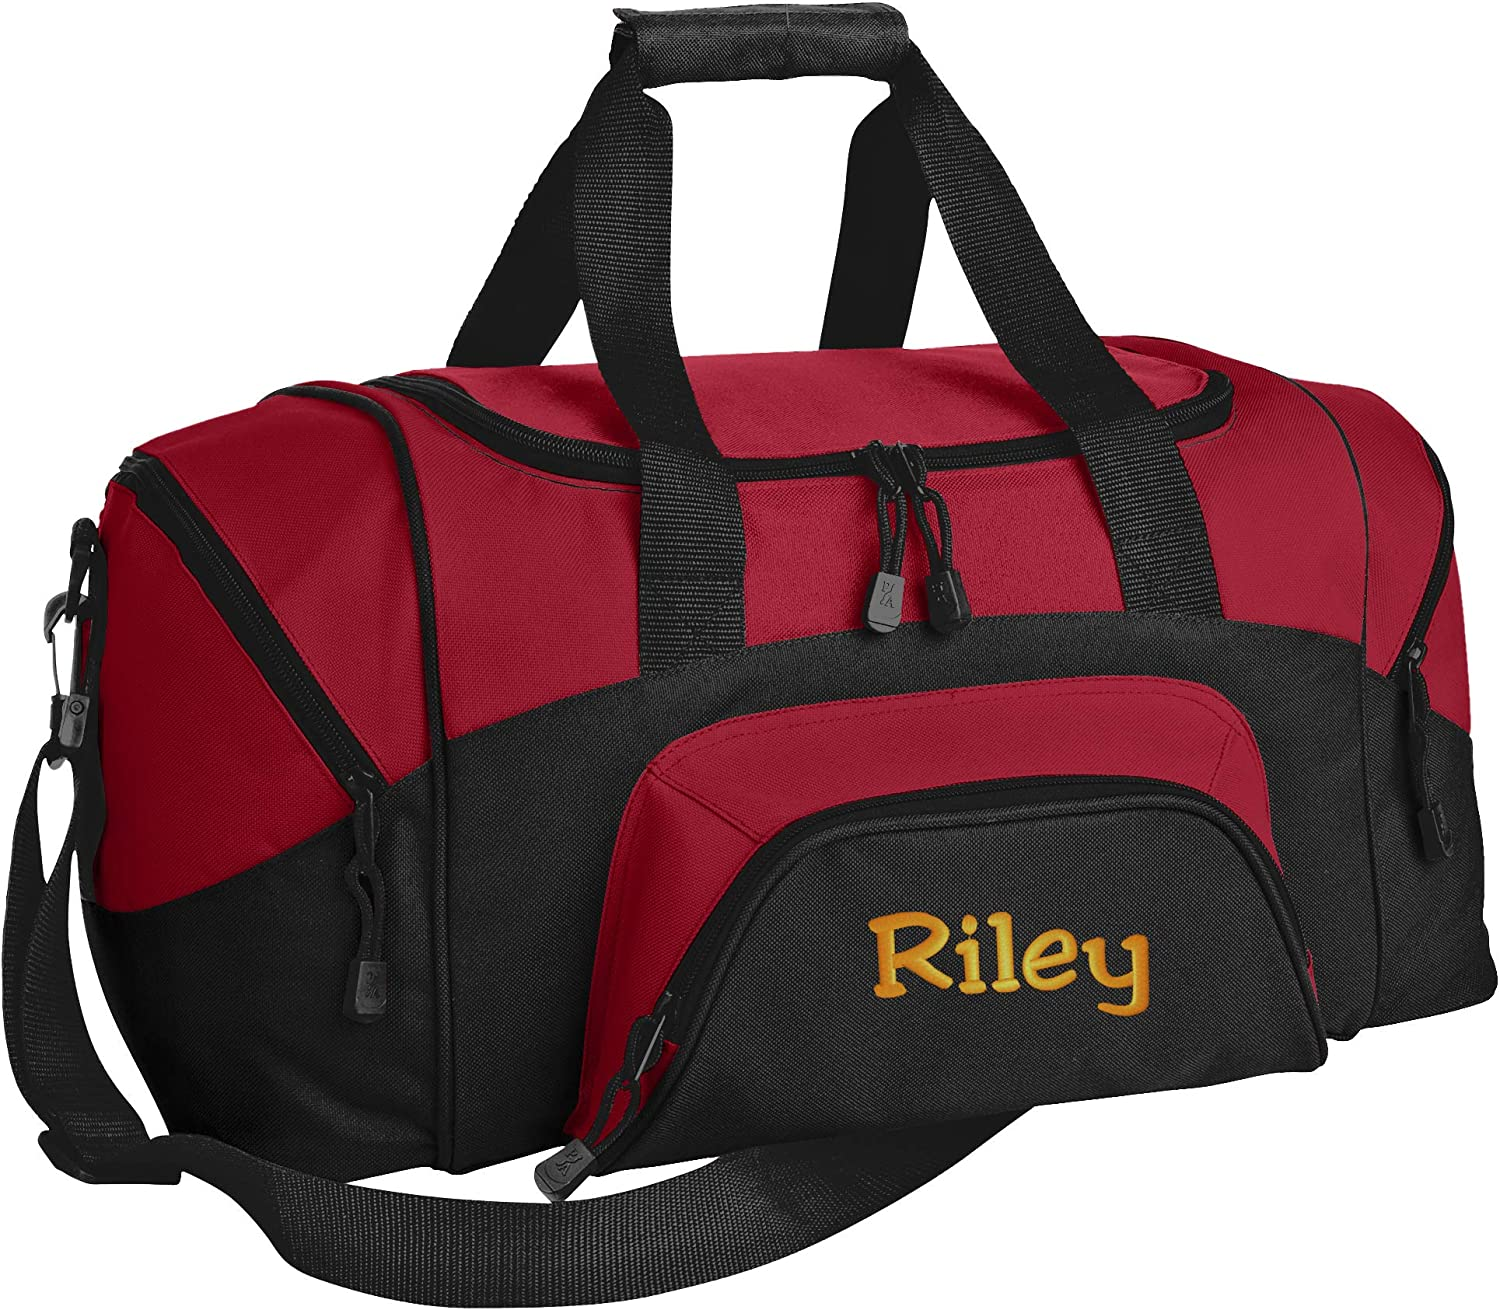 Personalized Monogrammed Small Gym Duffel Bag with Custom Text Sports Bag with Customizable Embroidered Monogram Design Black//Dark Charcoal